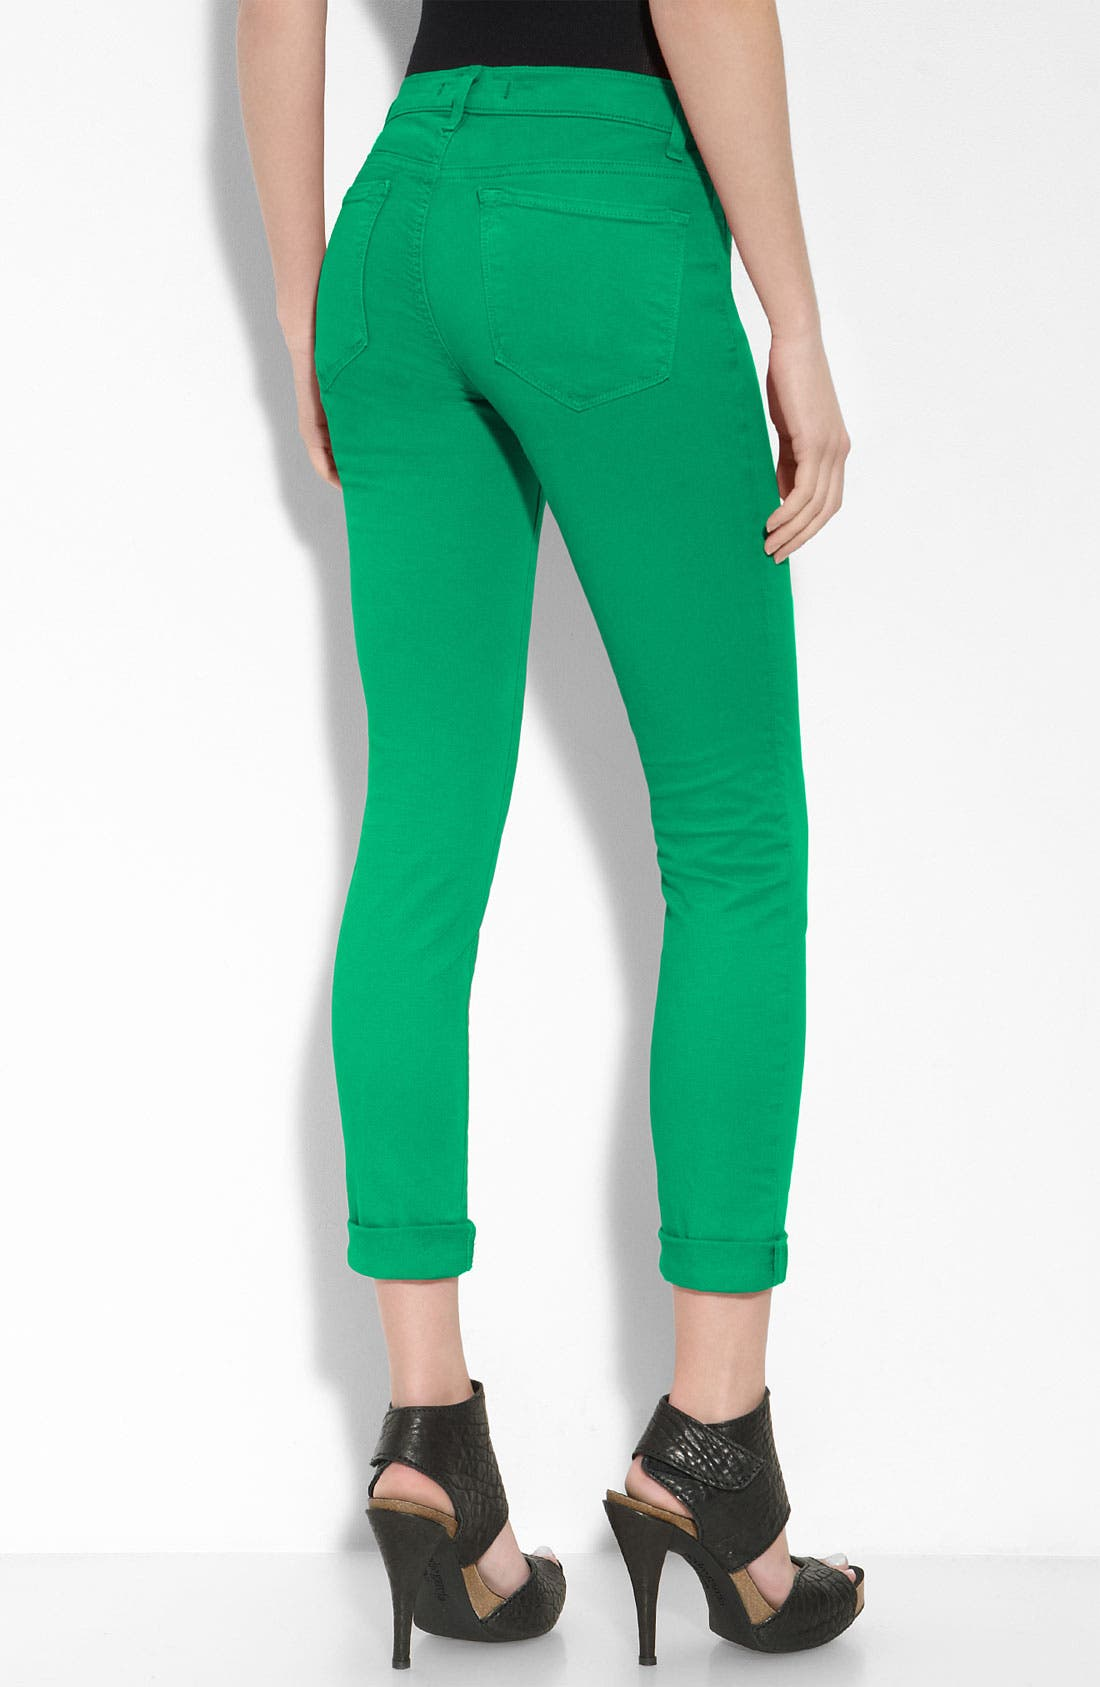 Skinny Stretch Twill Pants,                         Main,                         color, Emerald Green